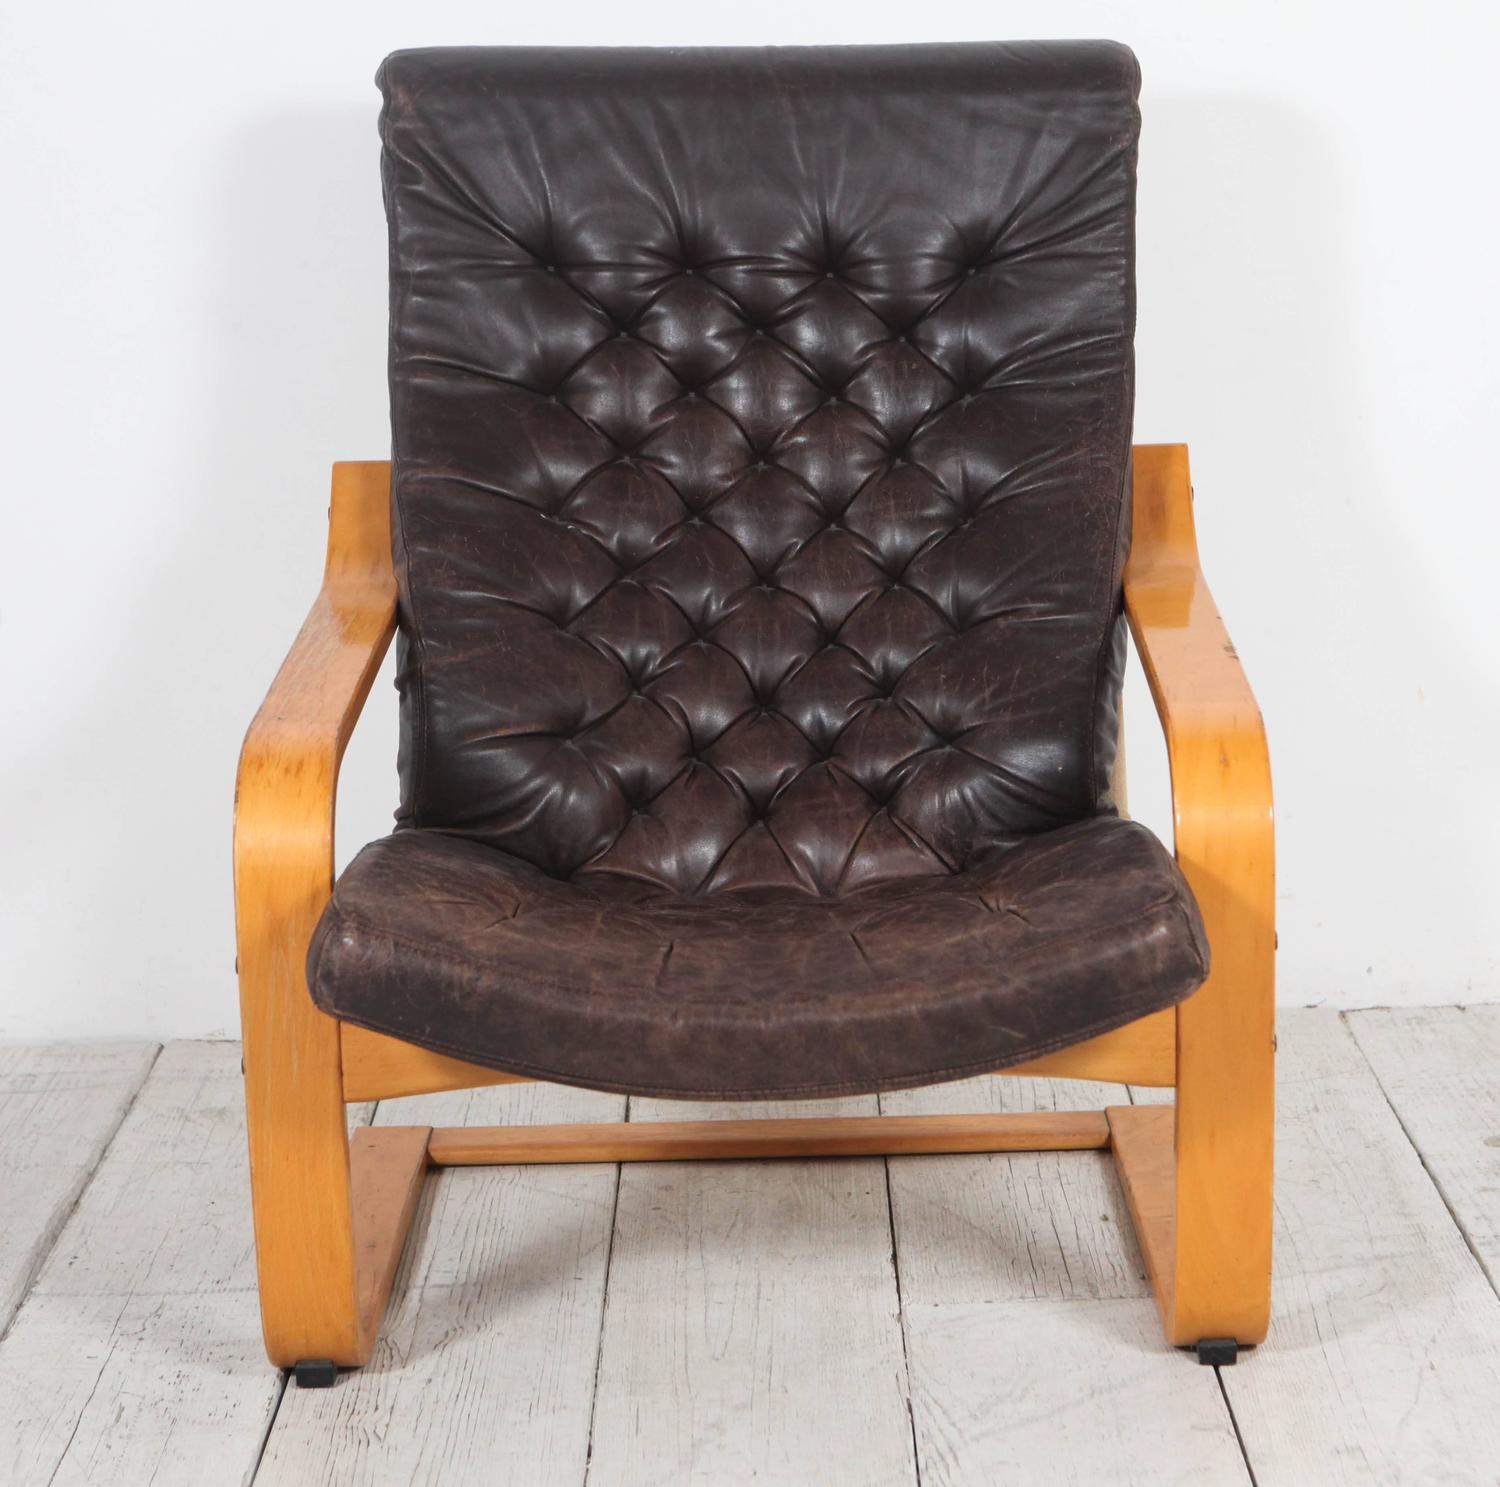 Marvelous Pair Of Original Poem Chairs In Tufted Black Leather By Forskolin Free Trial Chair Design Images Forskolin Free Trialorg